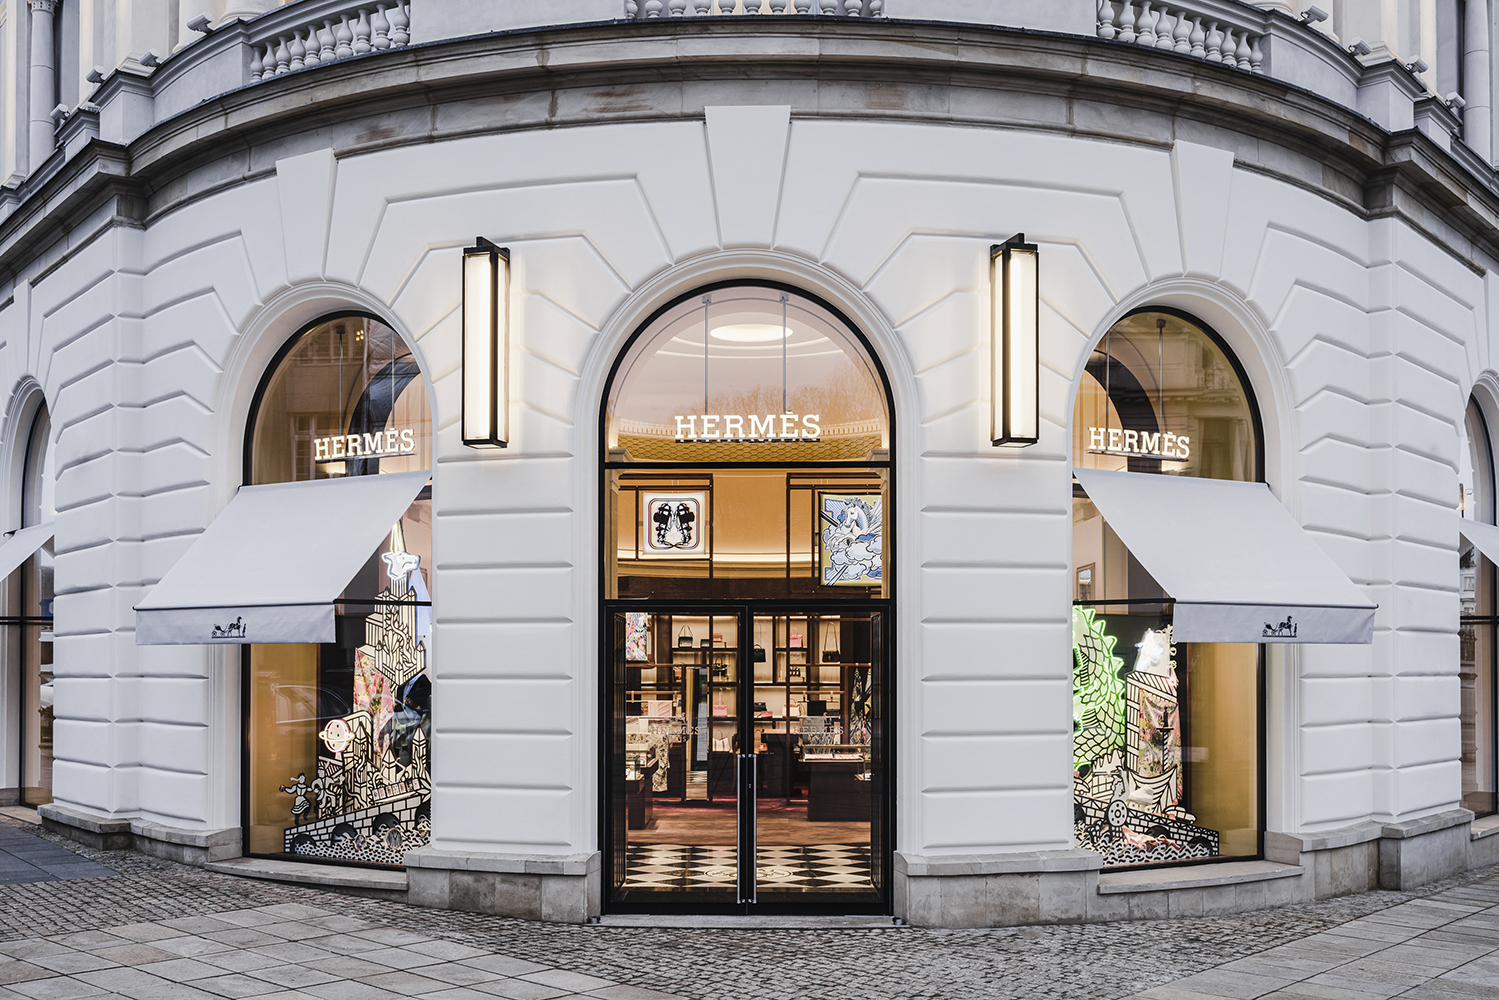 Hermes store Warsaw, Poland